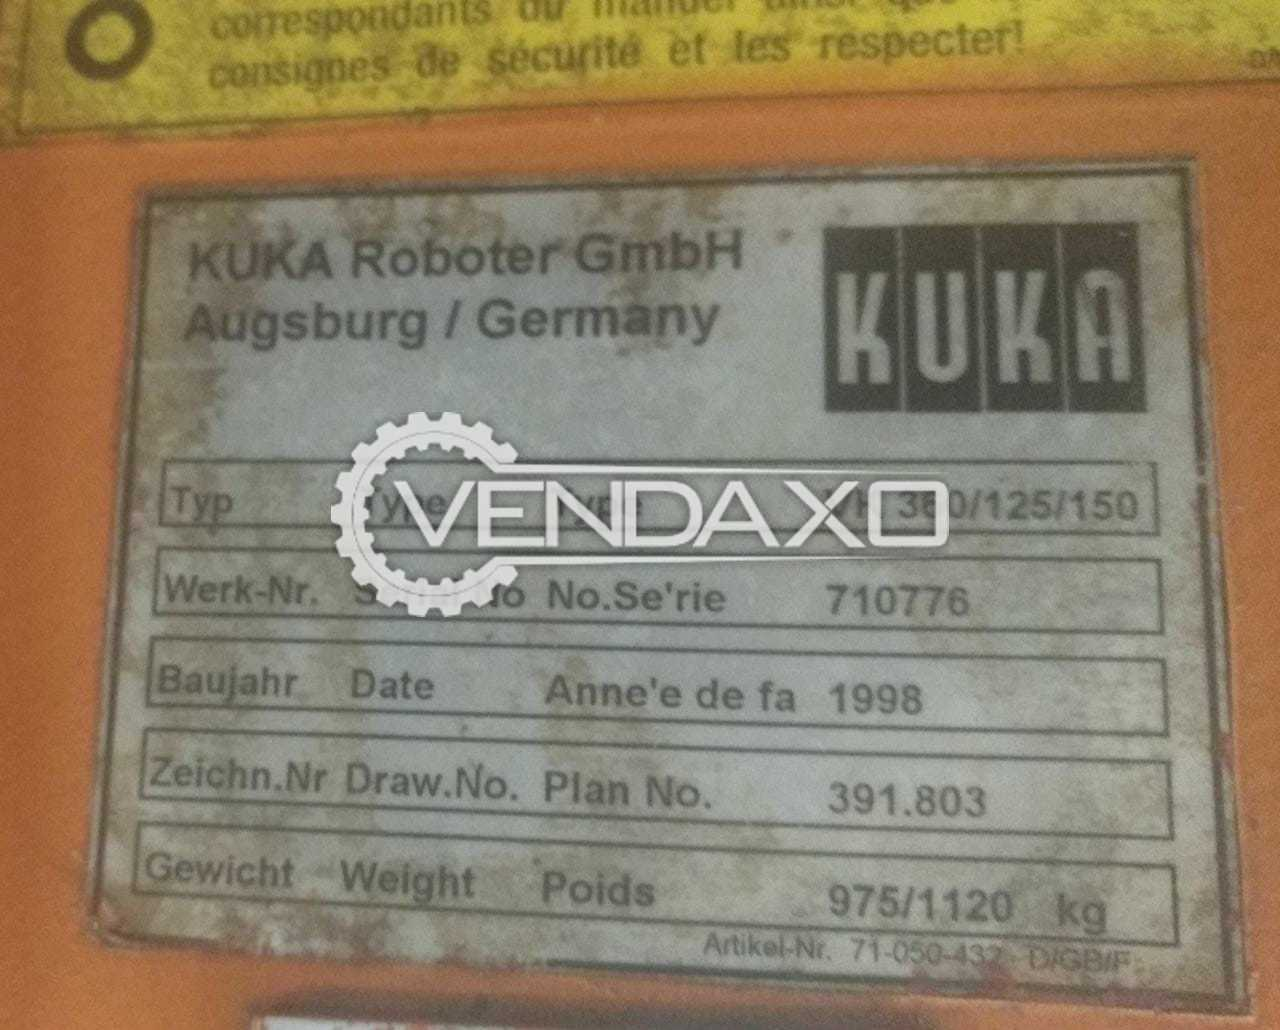 Available For Sale 5 Set of Kuka VK-360 Robot - 6 Axis